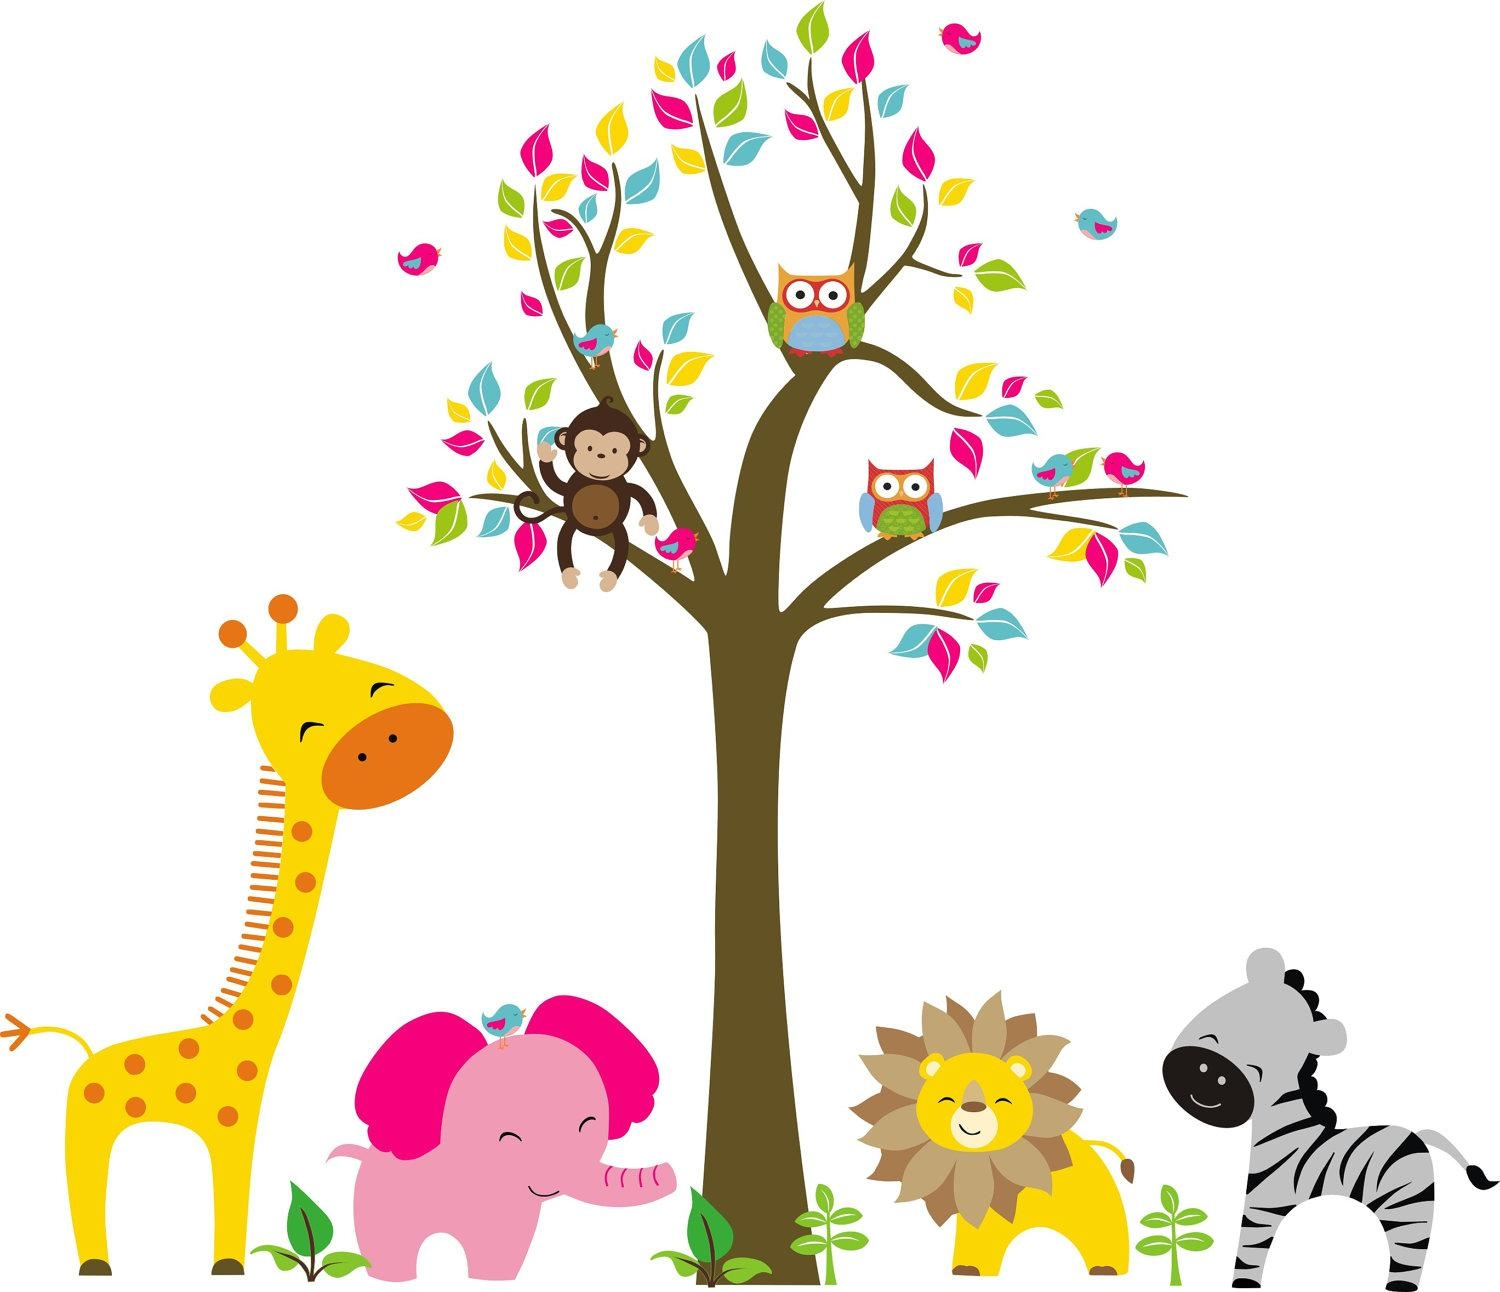 Kids Room: Wall Decal Ideas For Wall Decorations Wall Stickers With Regard To Children Wall Art (View 16 of 20)